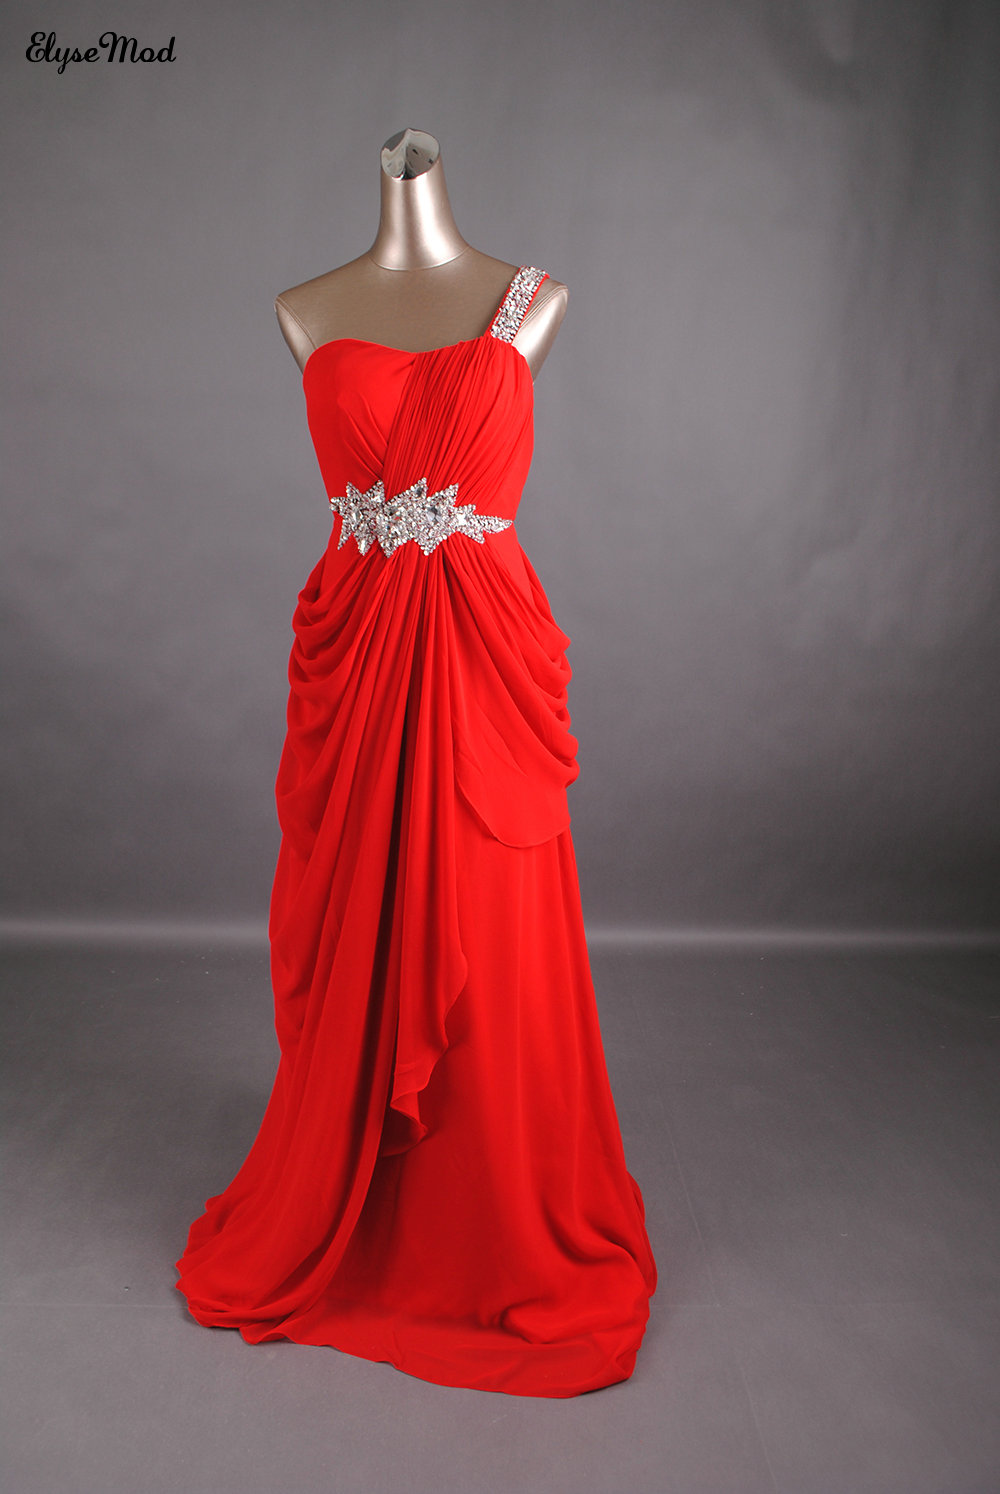 Fancy New Style A-Line One Shoulder   Prom     Dresses   with Beads and Crystals Court Train Chiffon Red   Prom   Party Gowns